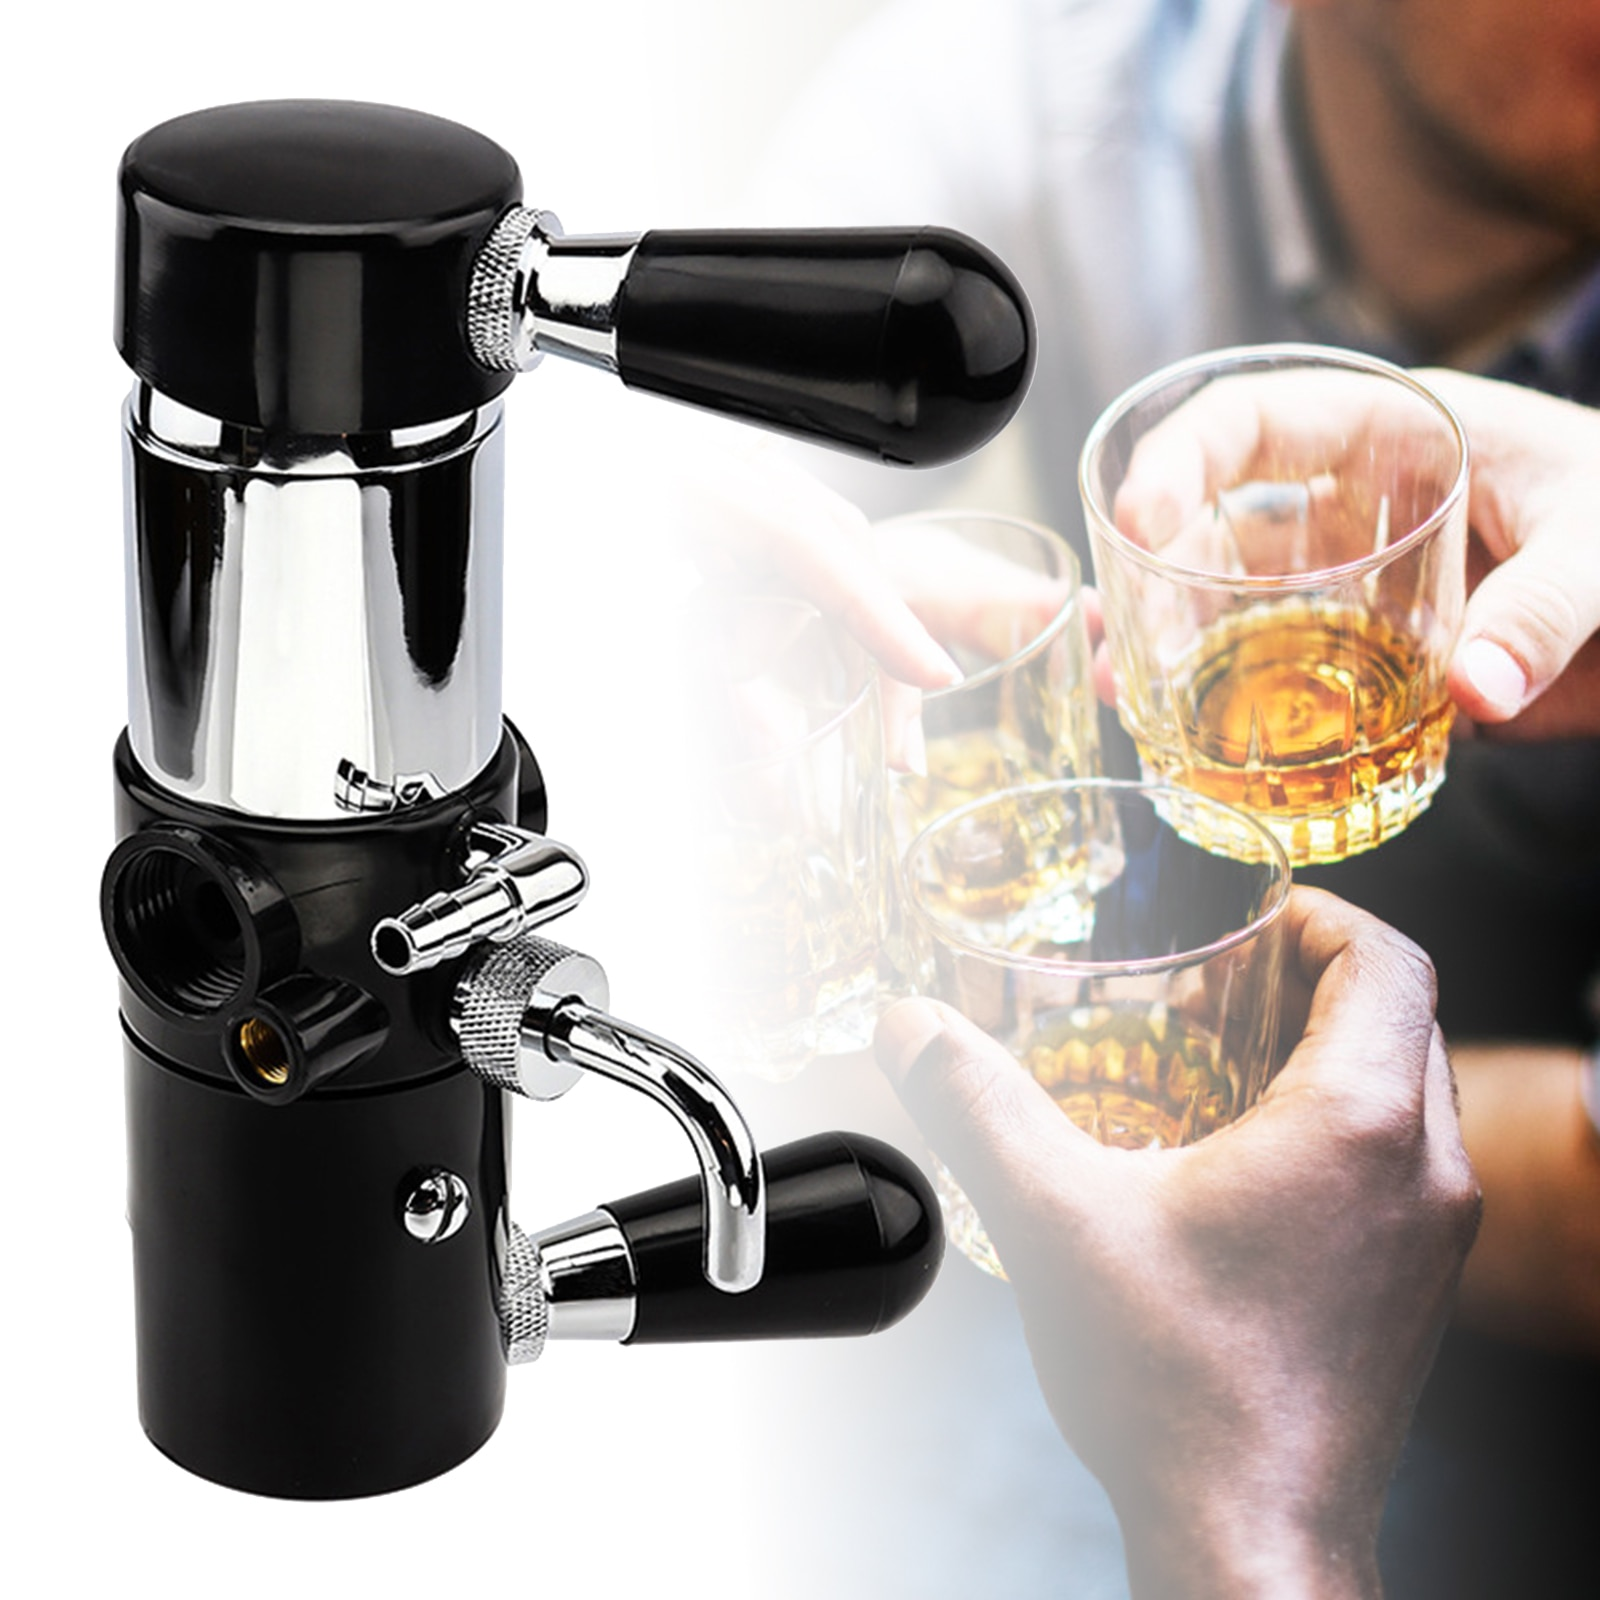 Homebrew Beer Bottle Fill Beer Tap Defoaming Beer Tap Maximize Beer Freshness and Authenticity Tools Bar Brewing Accessories